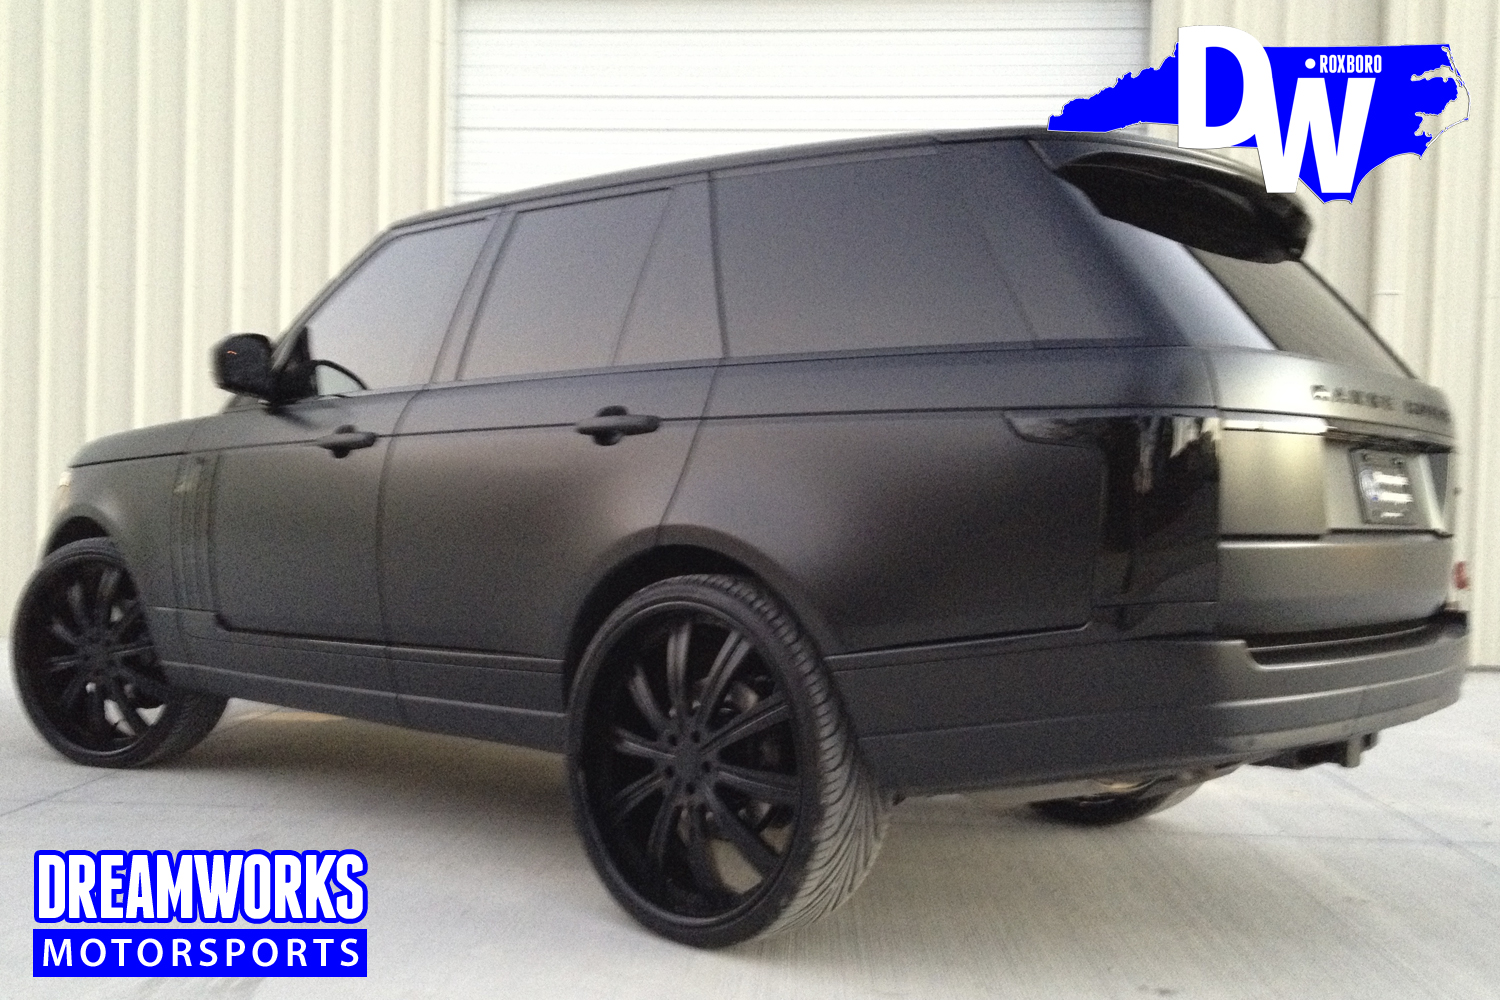 Wesley-Mathews-Range-Rover-Matte-Wrapped-By-Dreamworks-Motorsports-2.jpg